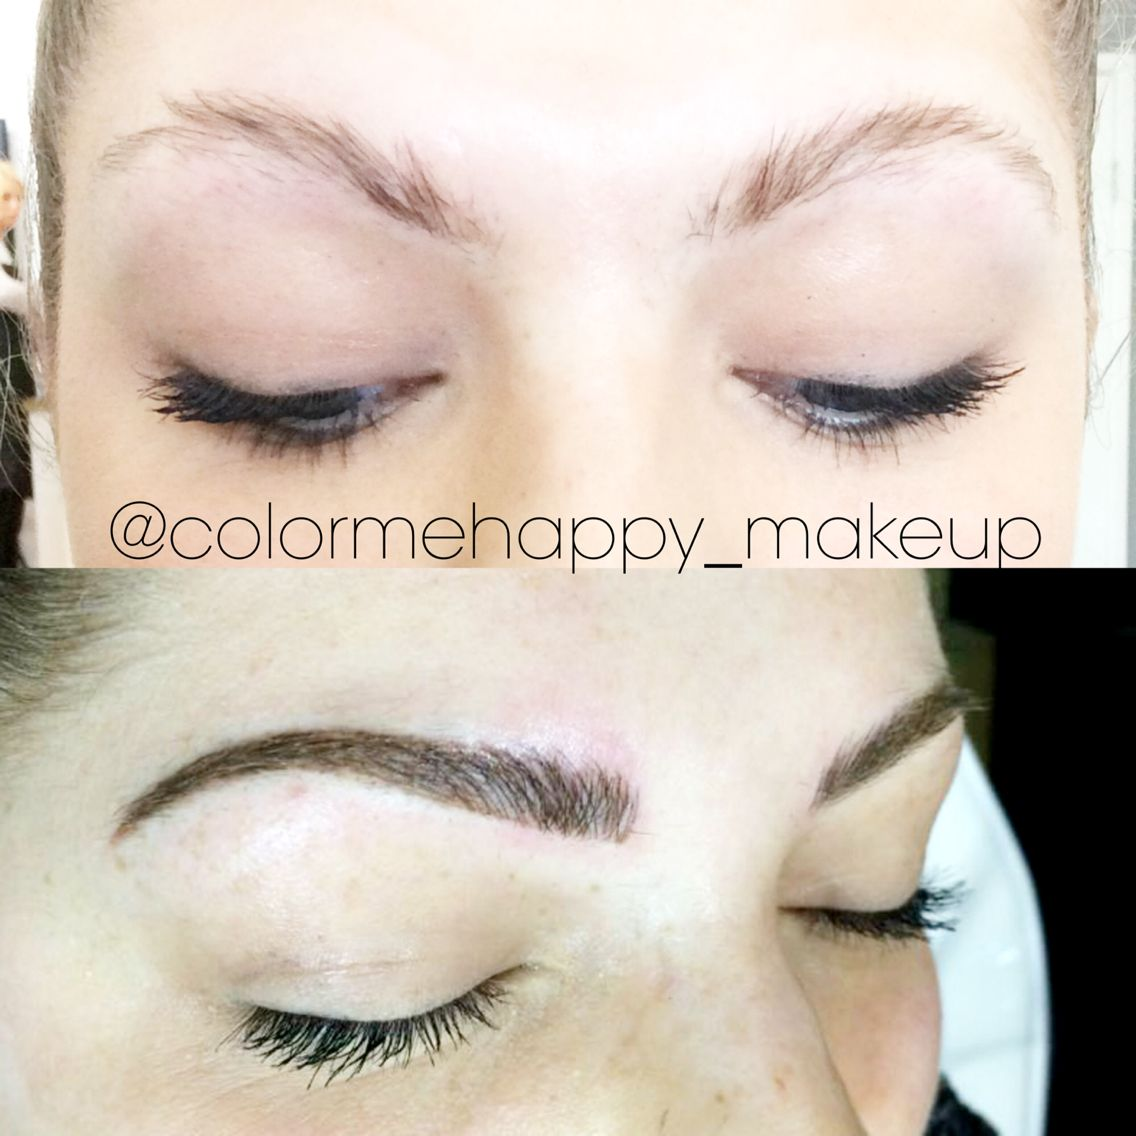 Hair stroke feather touch tattooed eyebrows 499 cosmetic for Eyebrow tattoo microblading